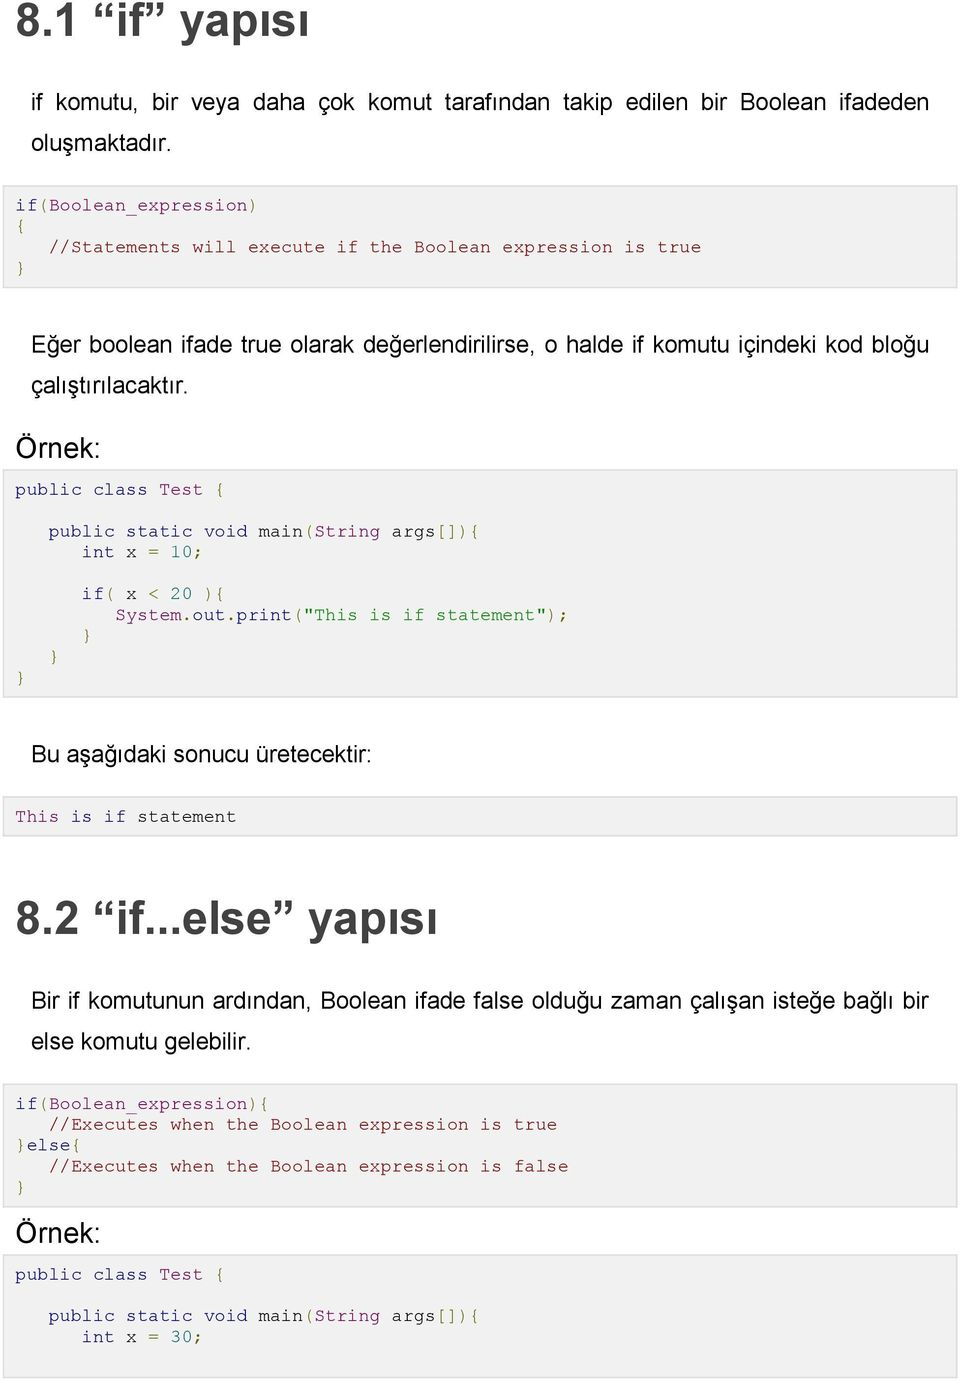 "Örnek: public static void main(string args[]){ int x = 10; if( x < 20 ){ System.out.print(""This is if statement""); Bu aşağıdaki sonucu üretecektir: This is if statement 8.2 if."